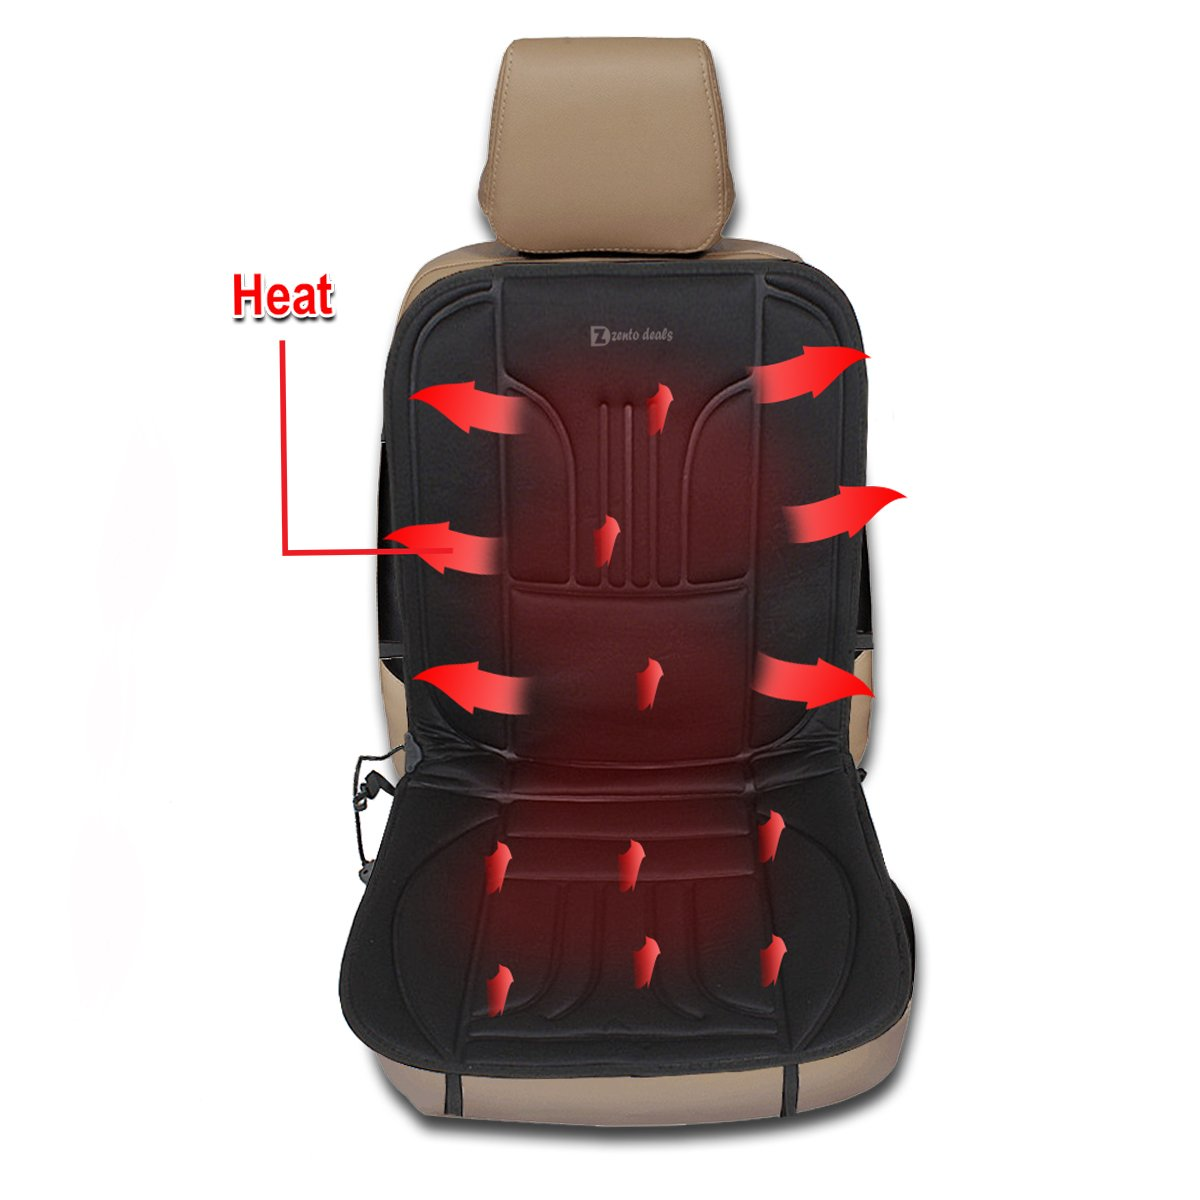 Use Seat Heater At Home With Car Adapter